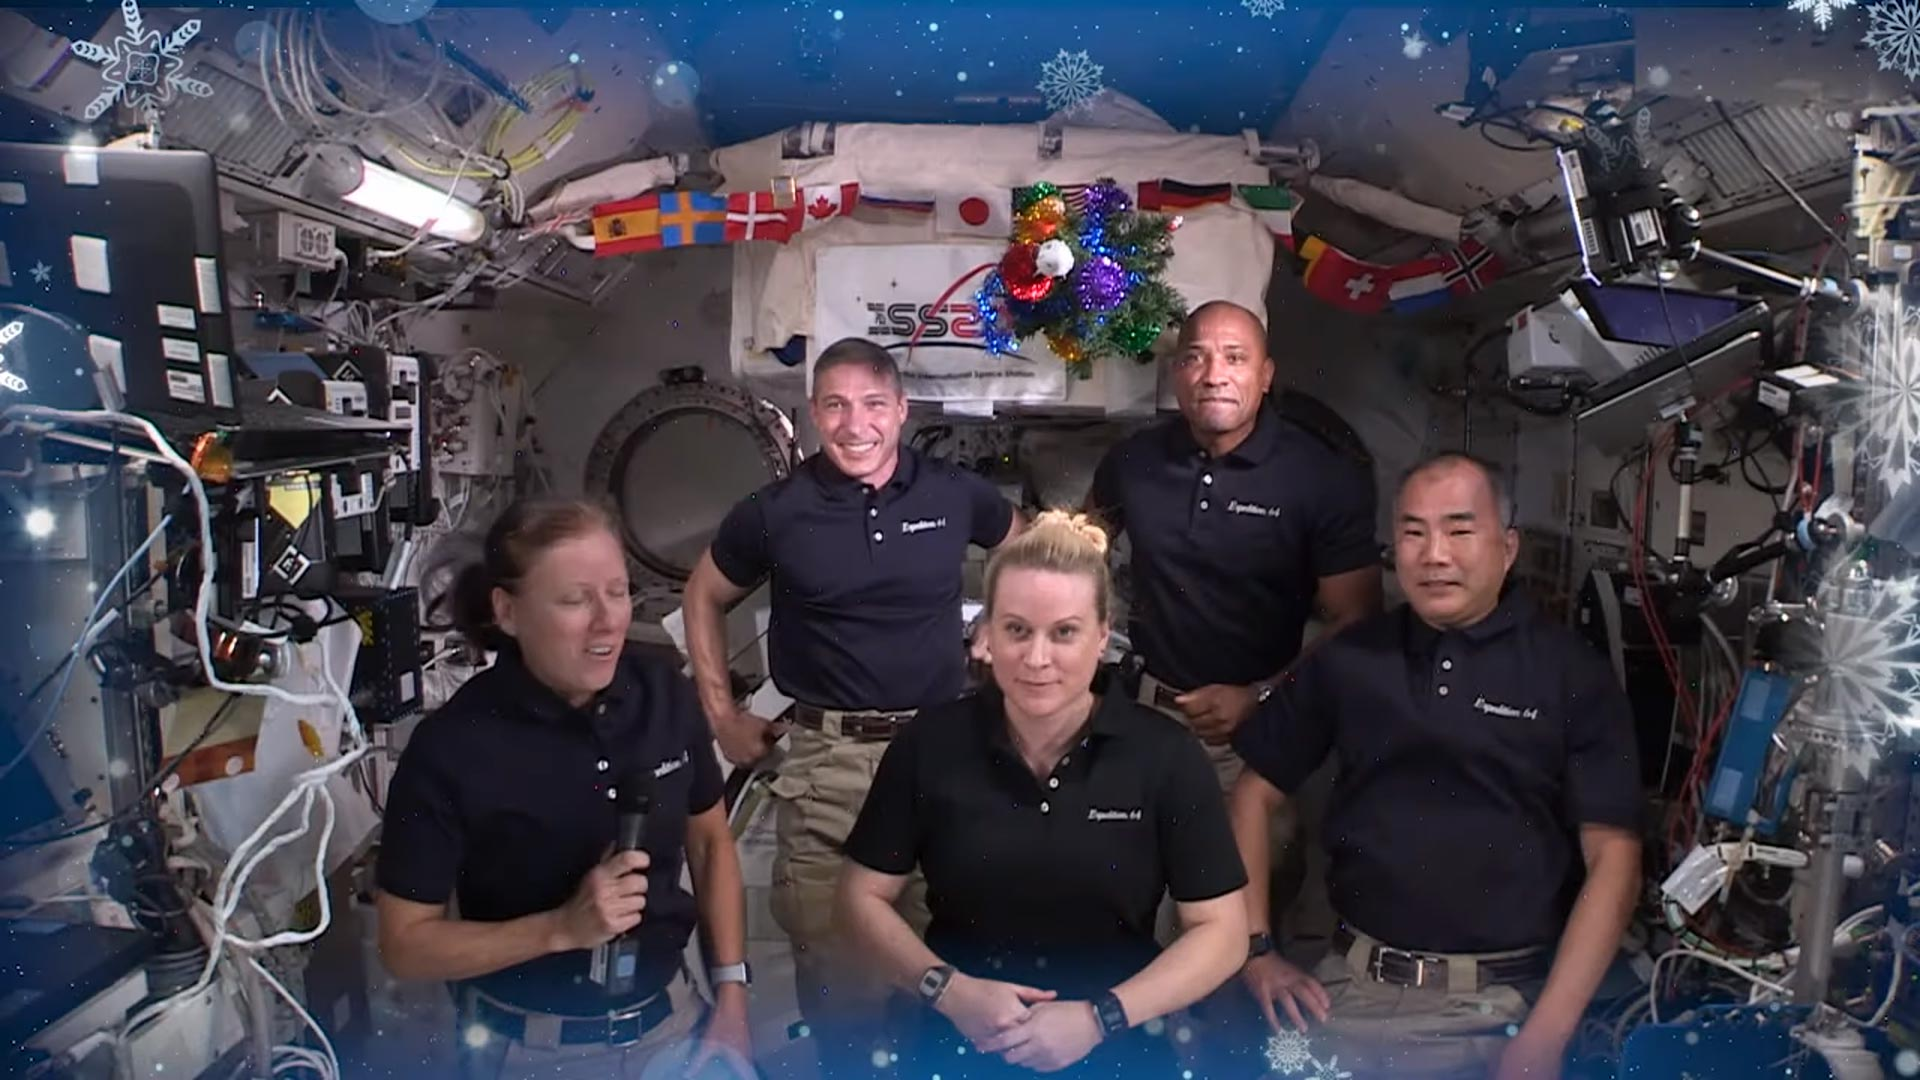 Santa visits ISS astronauts as they celebrate Christmas in space